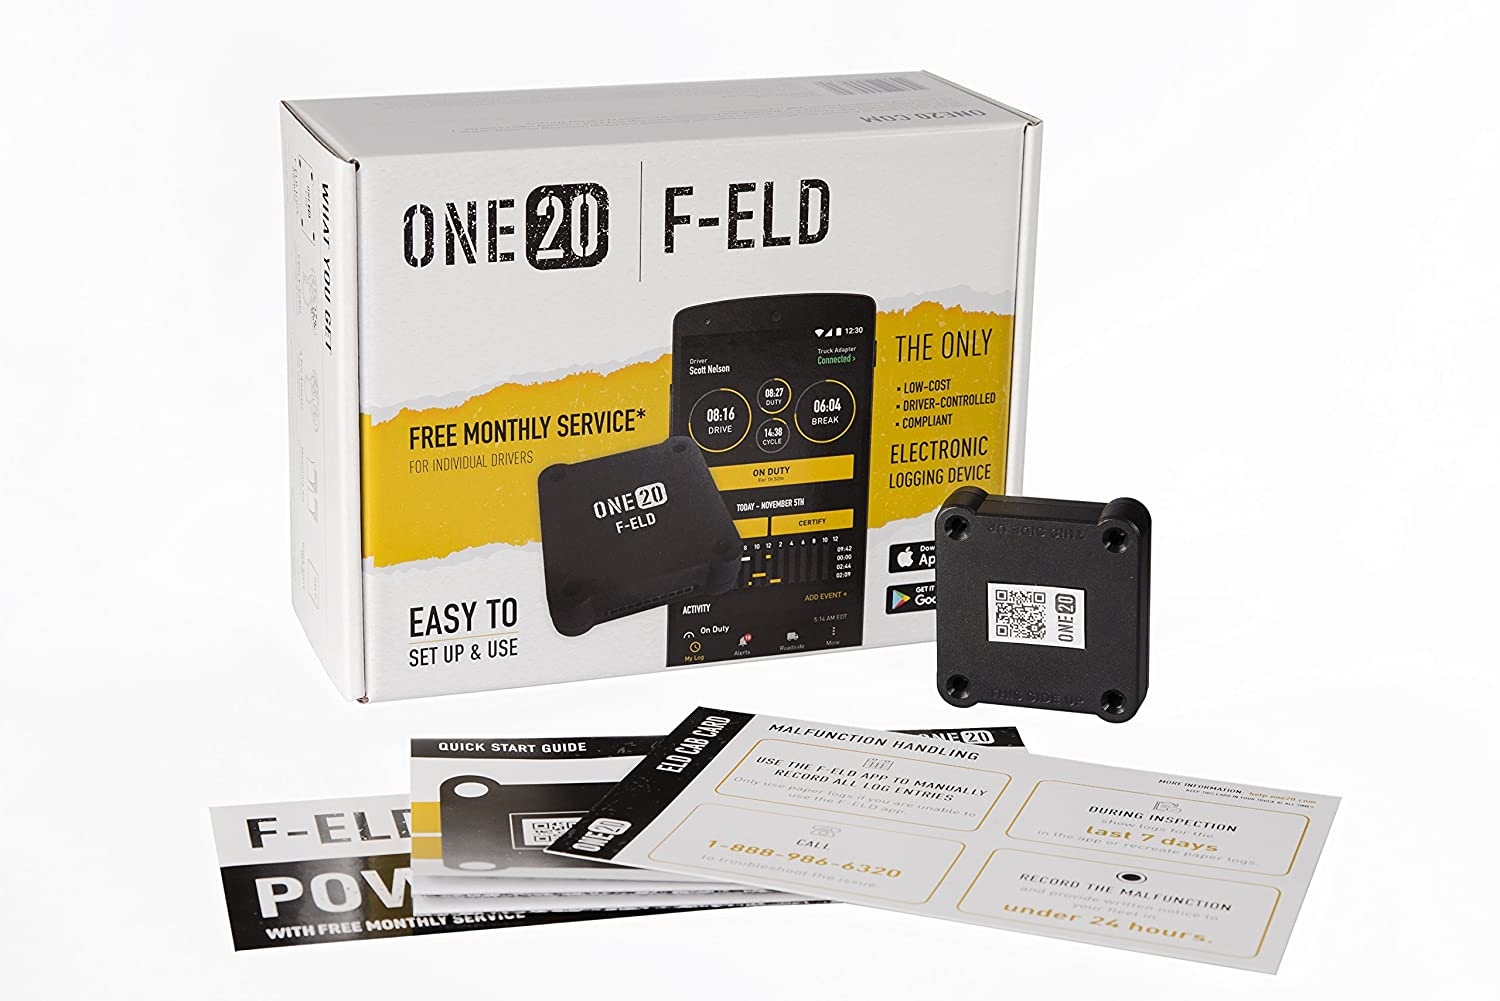 Amazon.com: ONE20 F-ELD Electronic Logging Device (ELD) For Hours Of ...